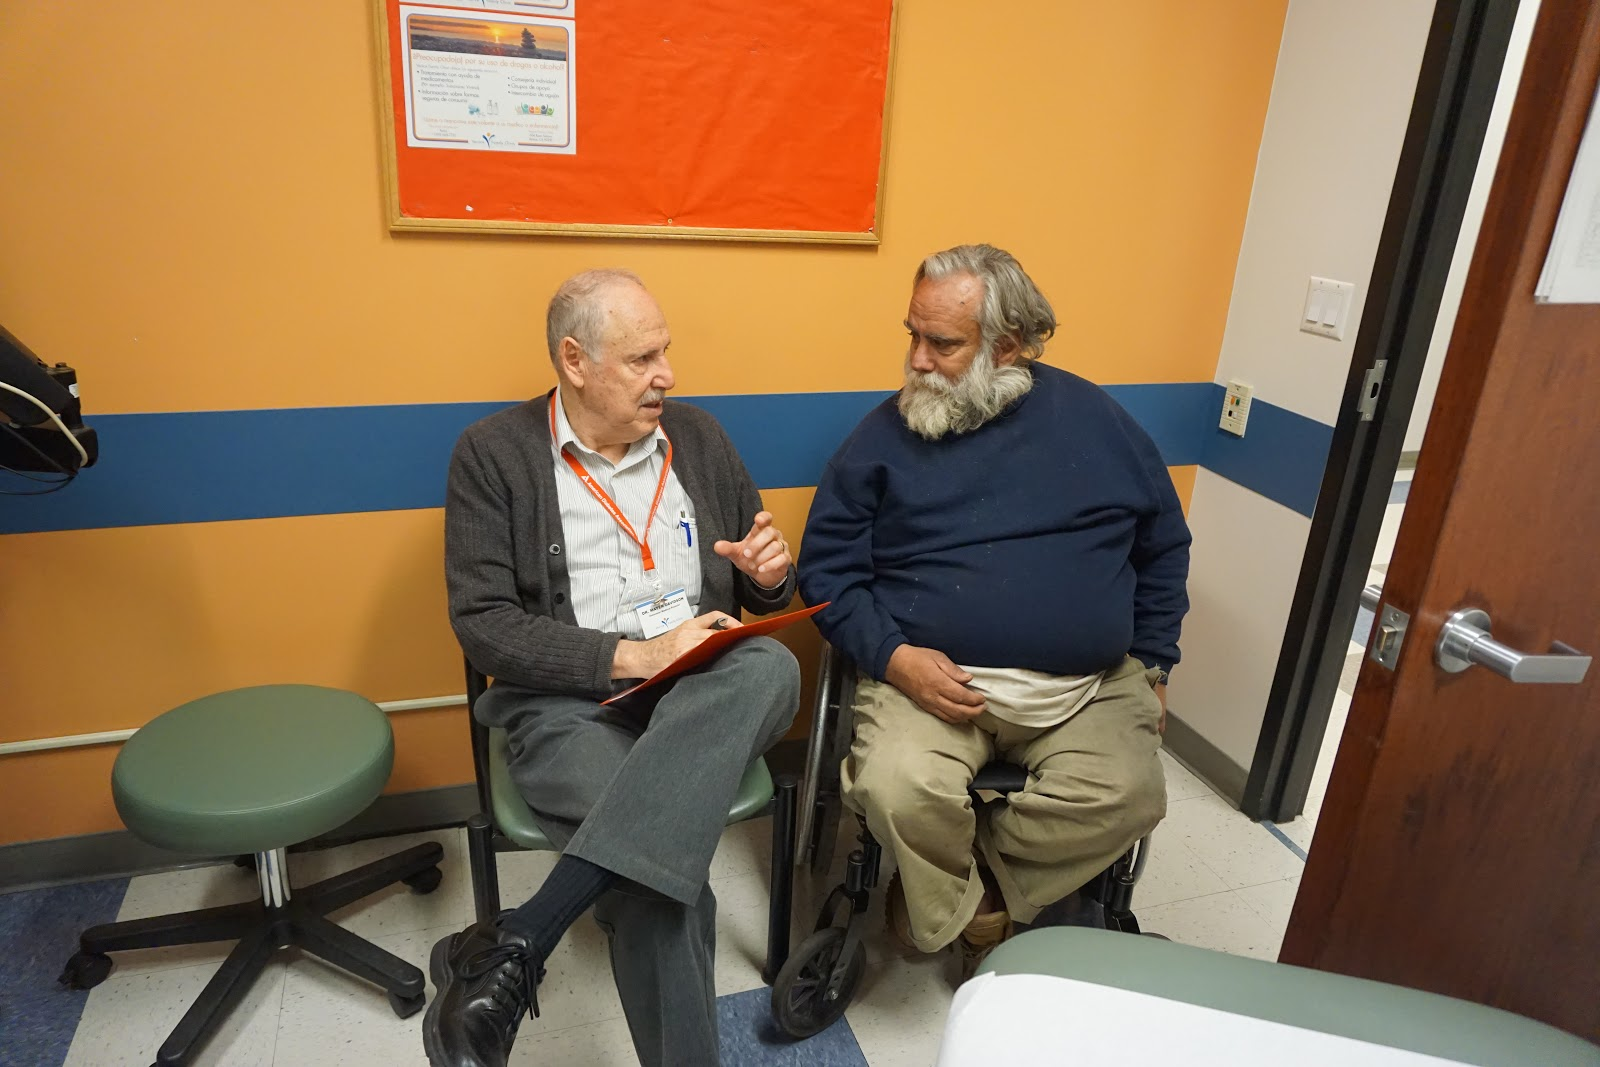 Figure 4. Dr. Mayer Davidson, co-founder of Venice Family Clinic, meets with an unsheltered patient in the office to provide specialty care. Taken by Pam Kerr of Venice Family Clinic.